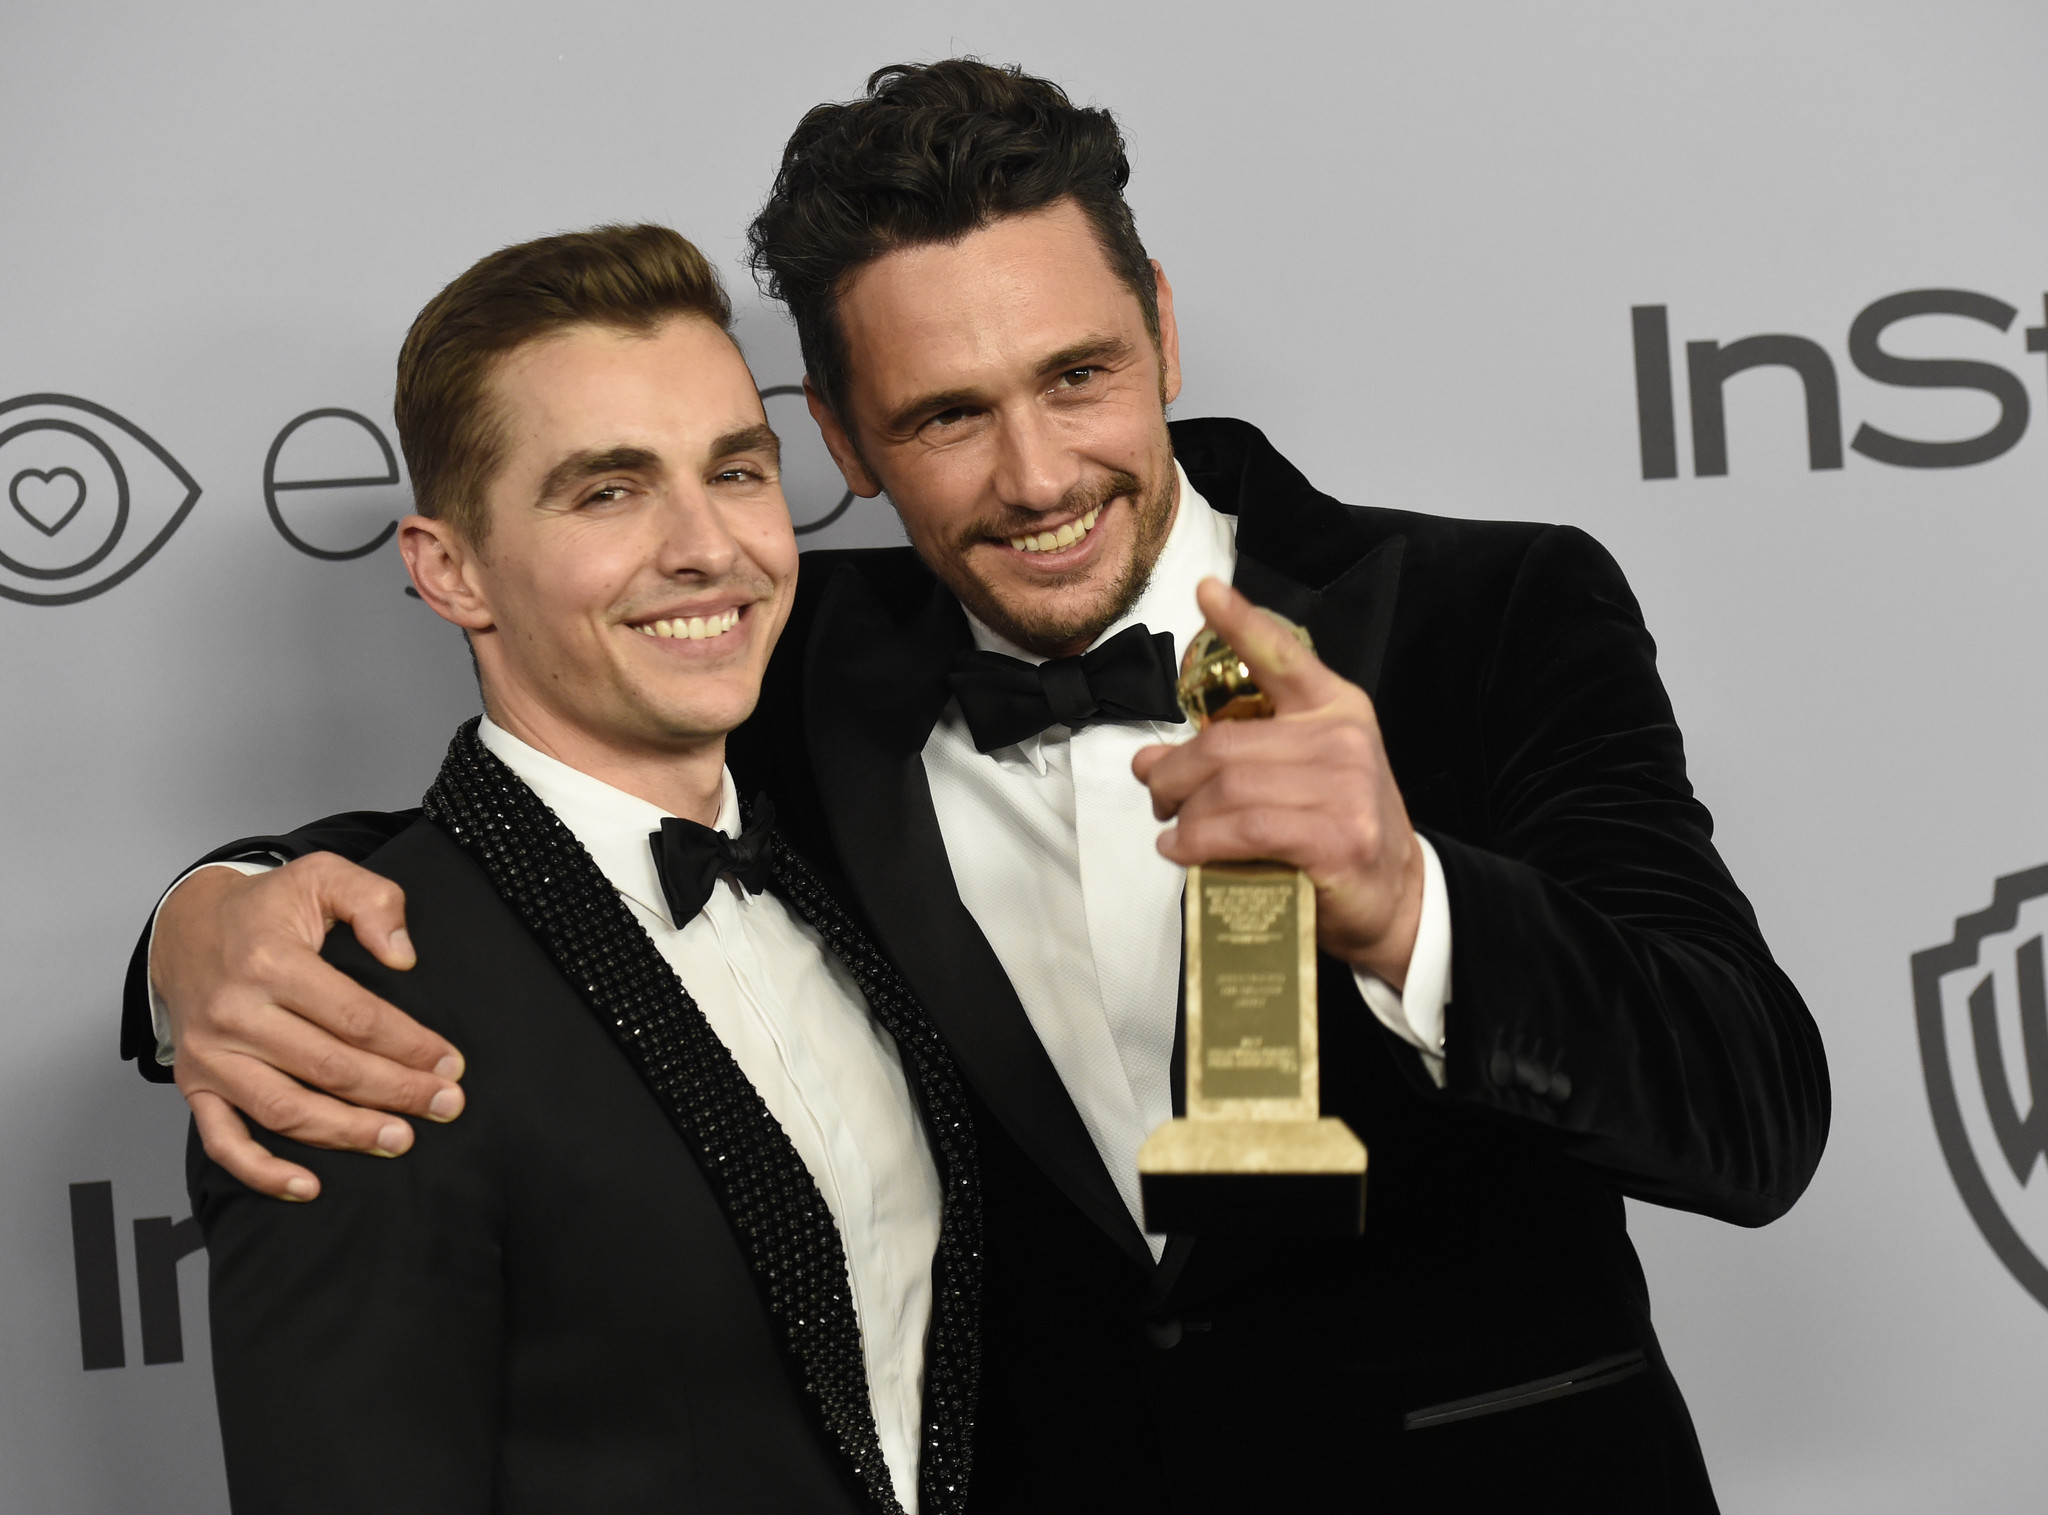 James Franco says allegations he's heard aren't accurate ...